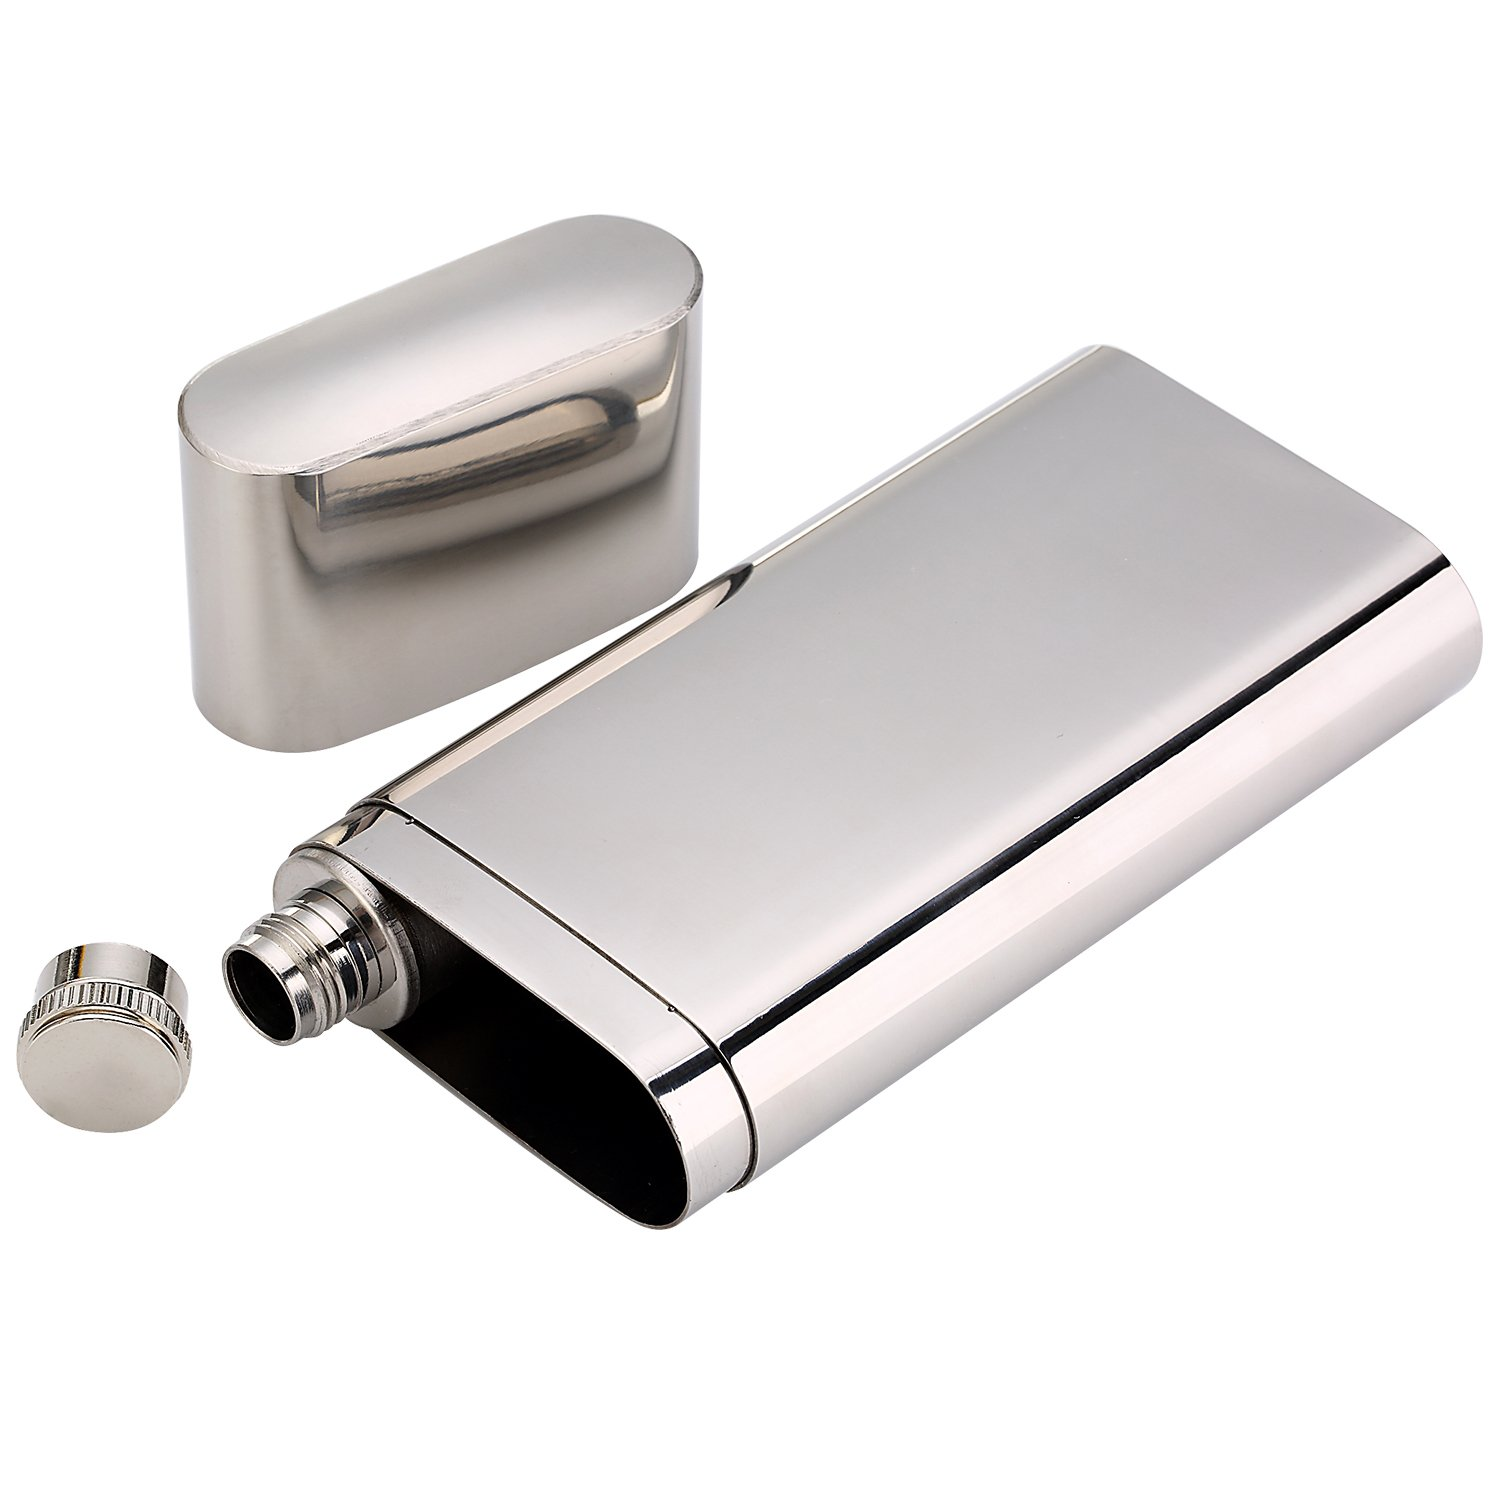 Stainless Steel Chilling Rocks / Stones (8) + Dual Cigar Flask (1) [Gift Set] + Funnel (1) + Tongs (1) [FDA Approved] by YazyCraft (Image #5)